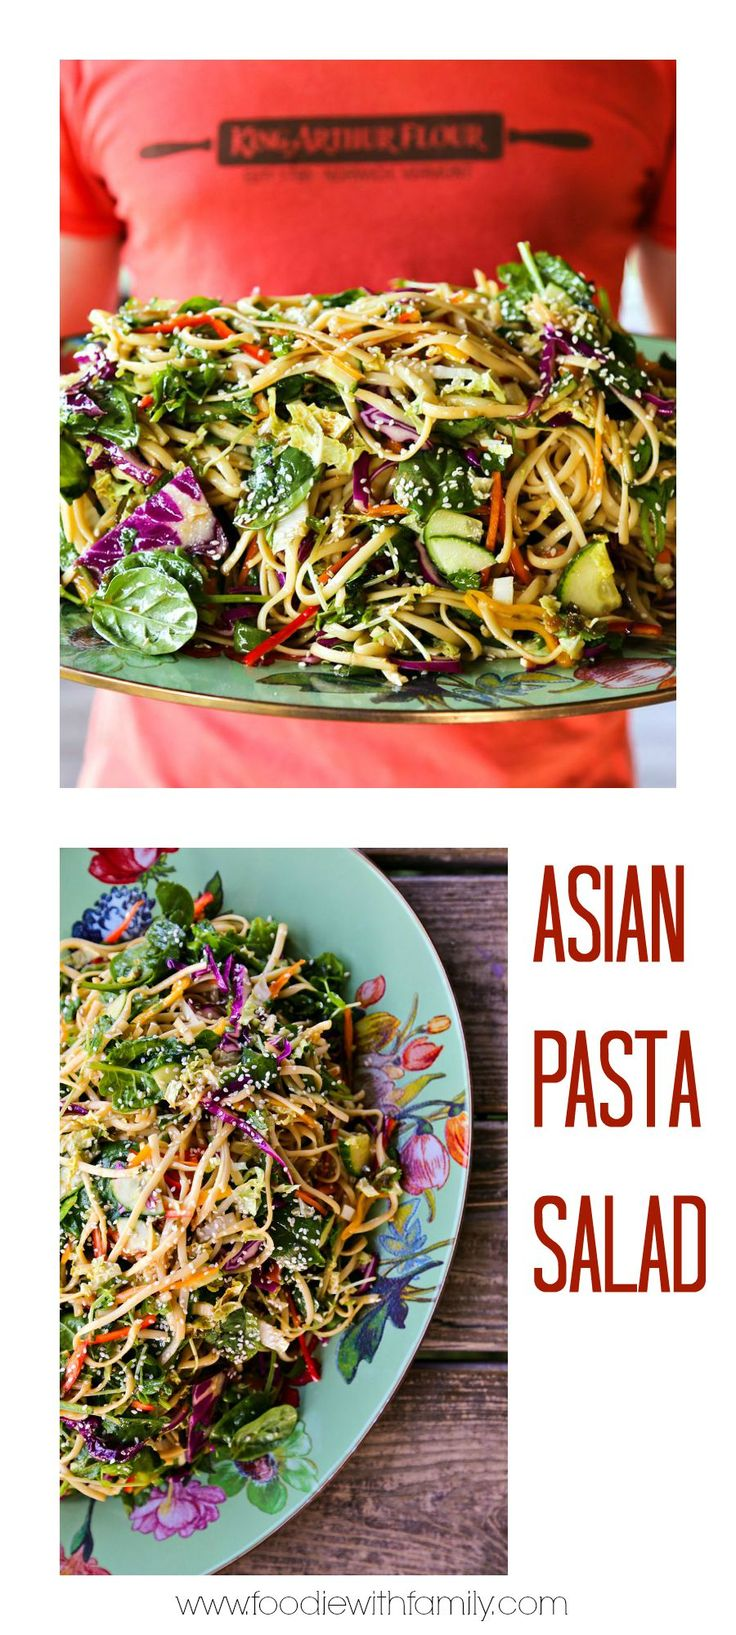 This delightful Asian Pasta Salad is seriously heavy on the crunchy vegetables with a flavourful garlic and ginger soy vinaigrette.